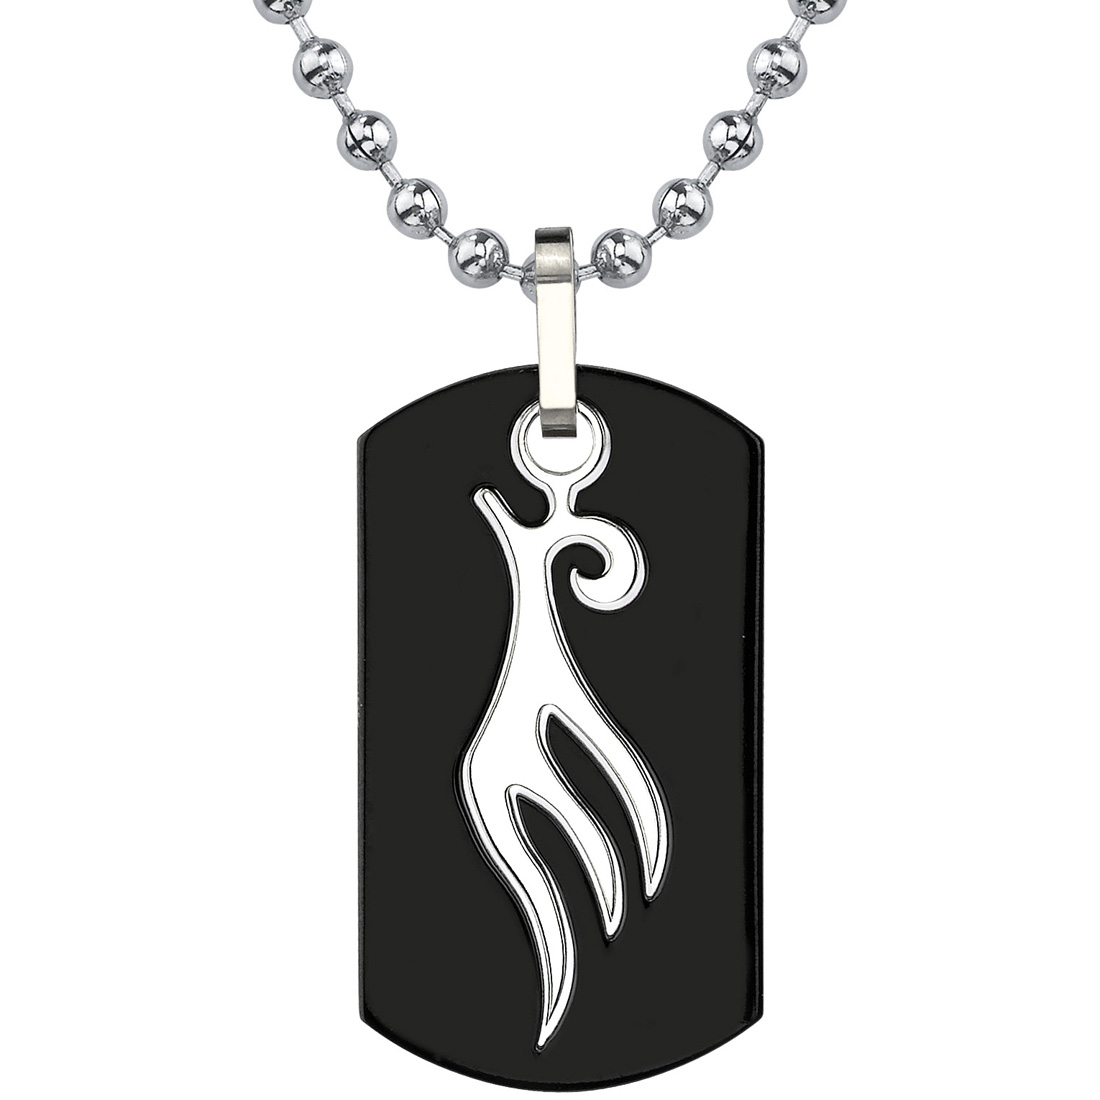 titanium dog tag pendant with tribalstyle bird tattoo on